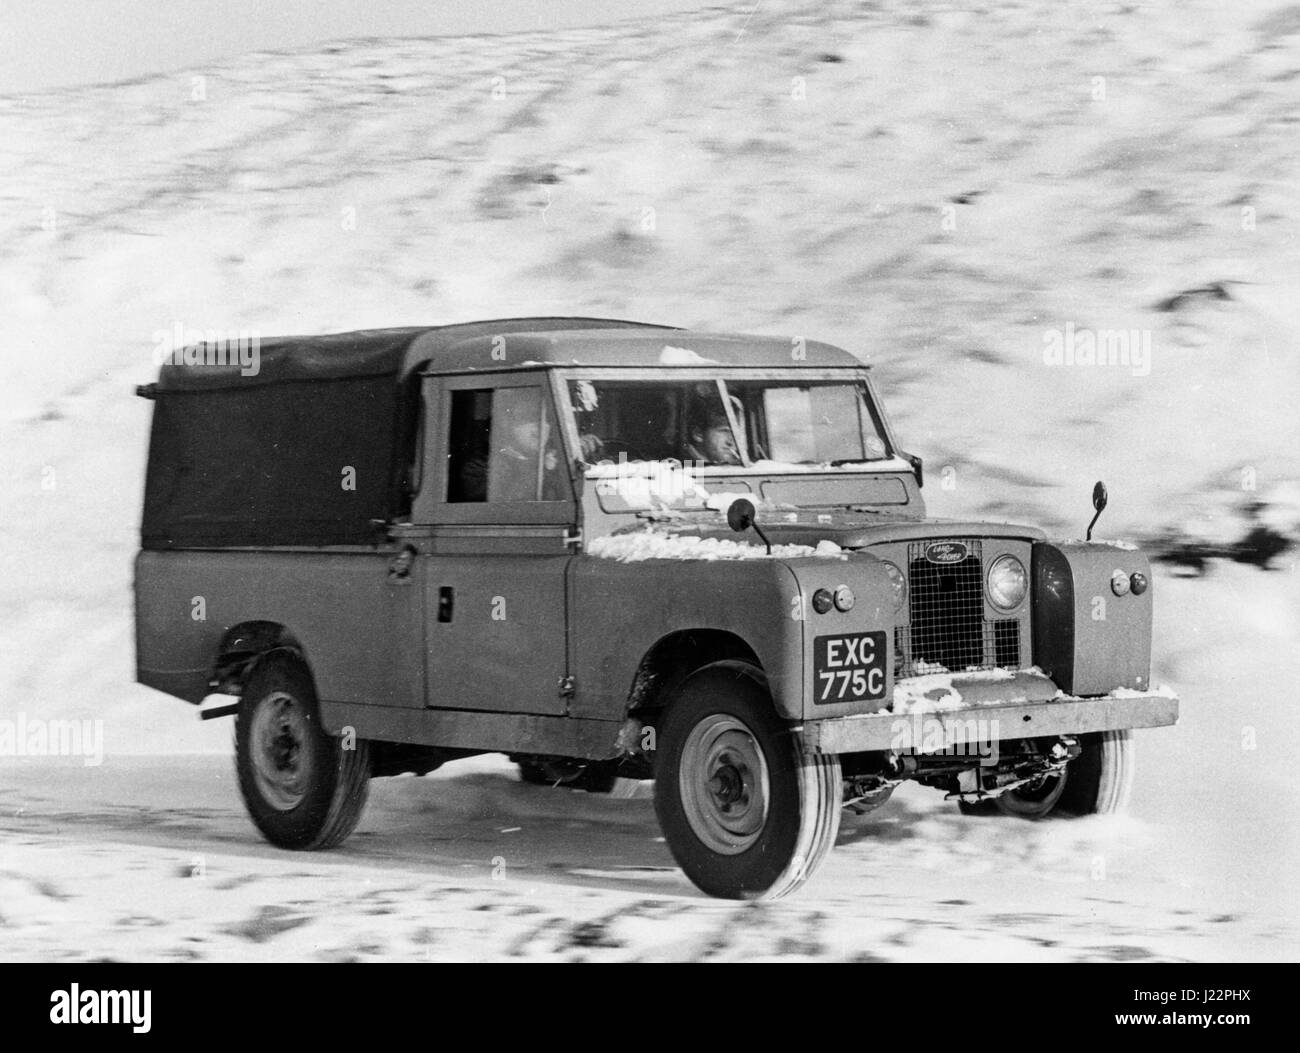 1965 Land Rover Series 2 109 - Stock Image